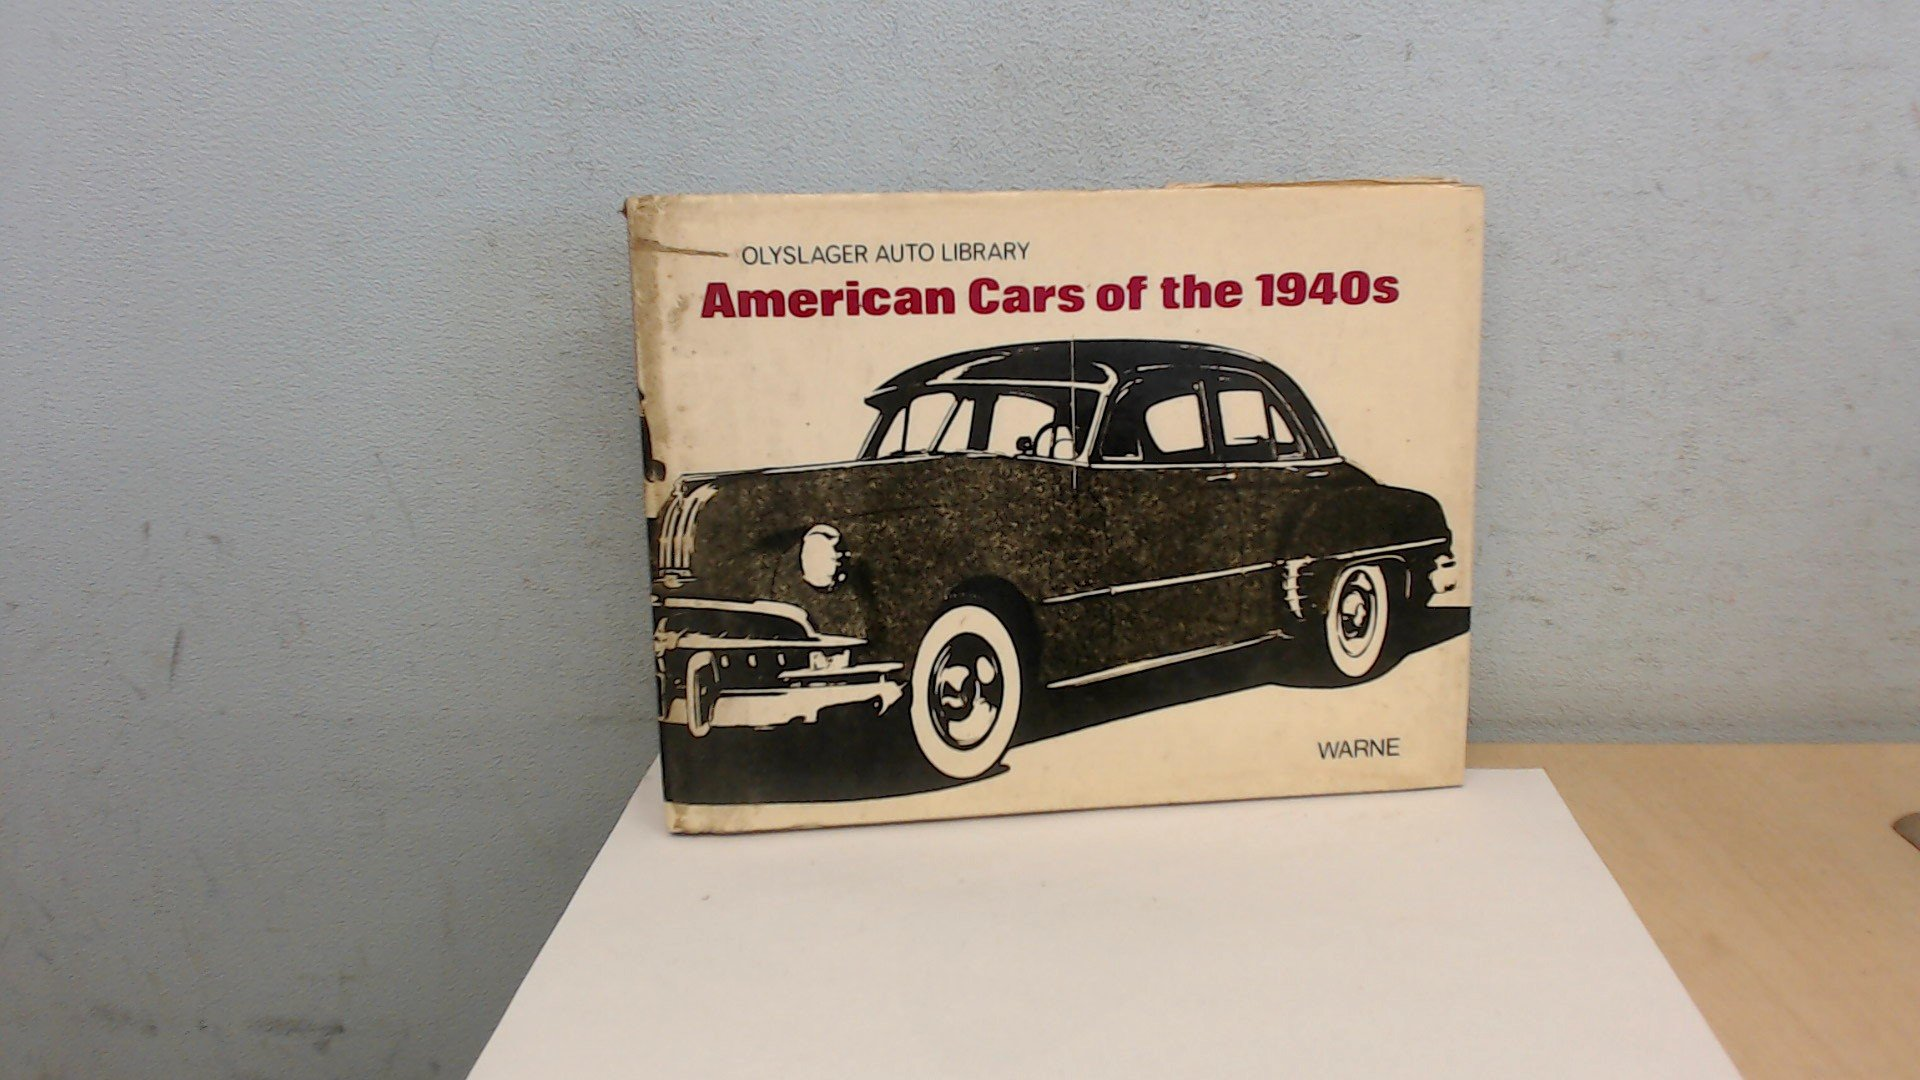 American Cars of the 1940s (Olyslager Auto Library)